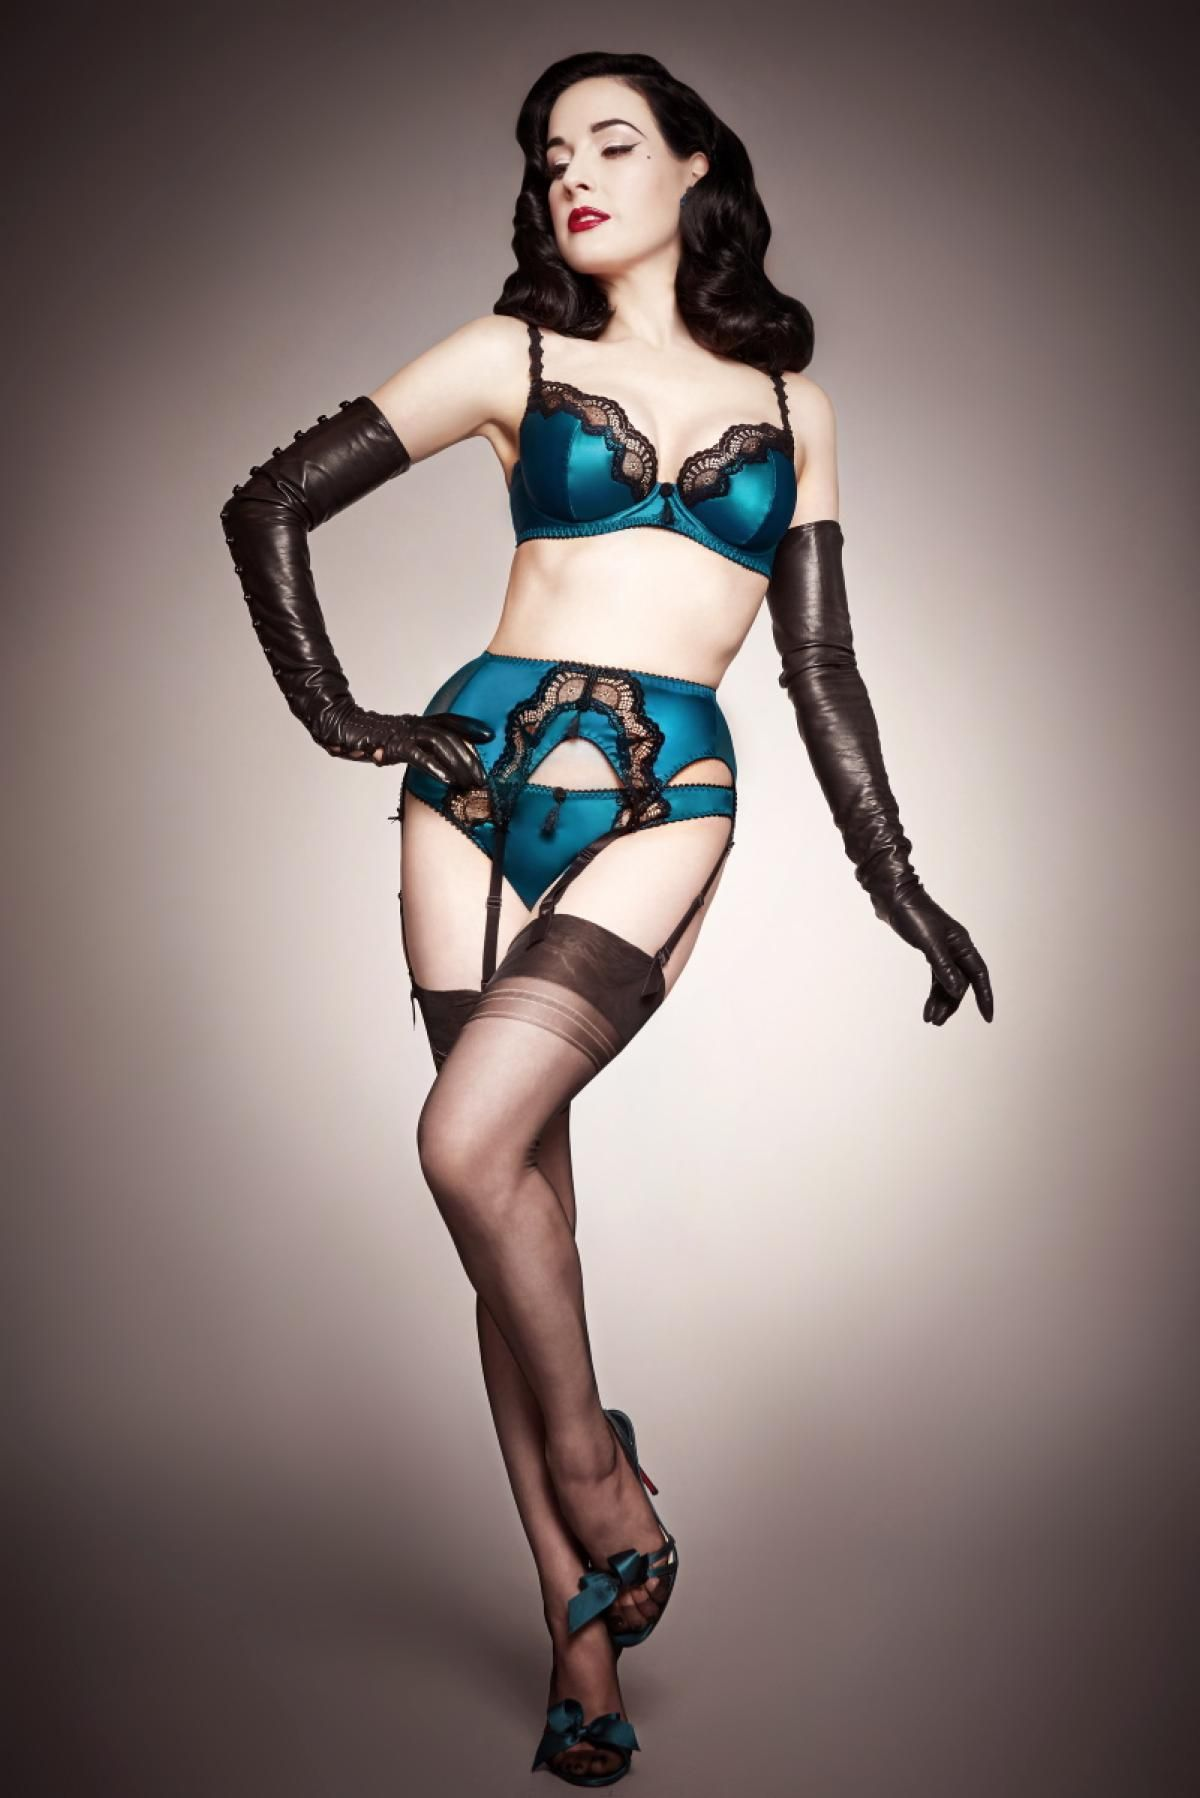 b72009d0da4a After working for several years at a lingerie store and building a large  library of vintage lingerie, burlersque dancer Dita Von Teese was inspired  to ...